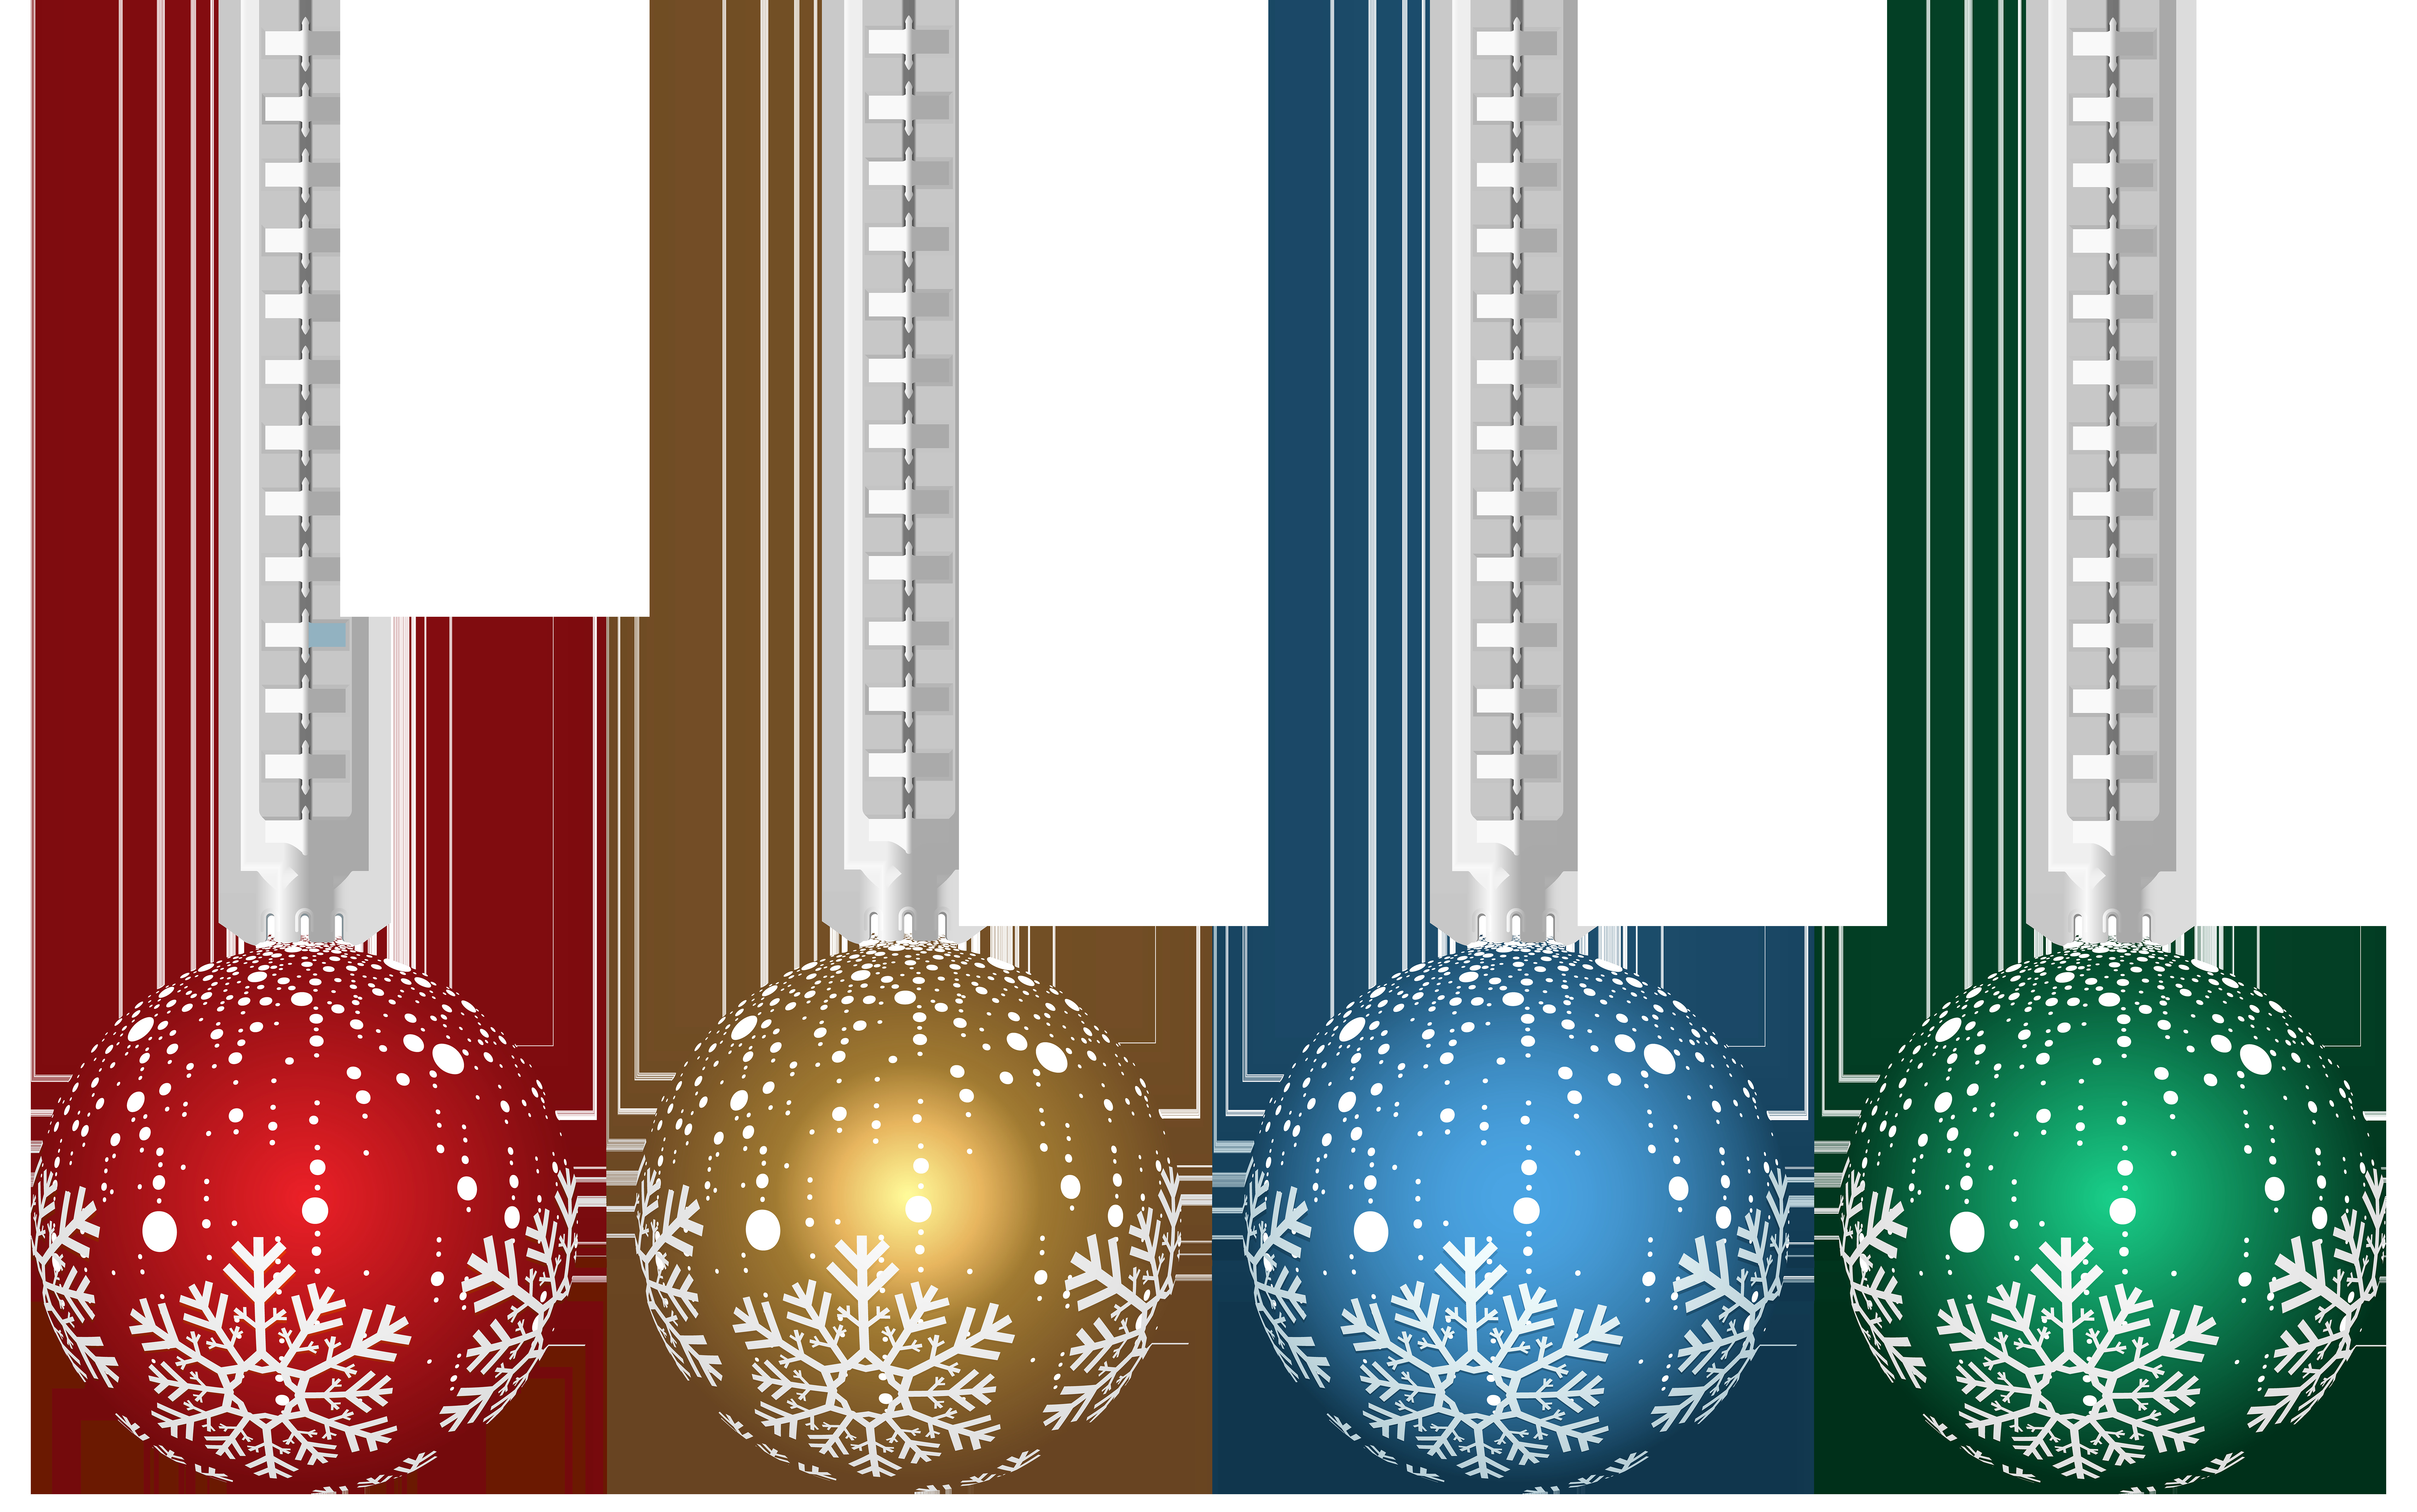 Hanging Christmas ornaments Awesome Christmas Hanging ornaments Transparent Clip Art Of Luxury 45 Pictures Hanging Christmas ornaments